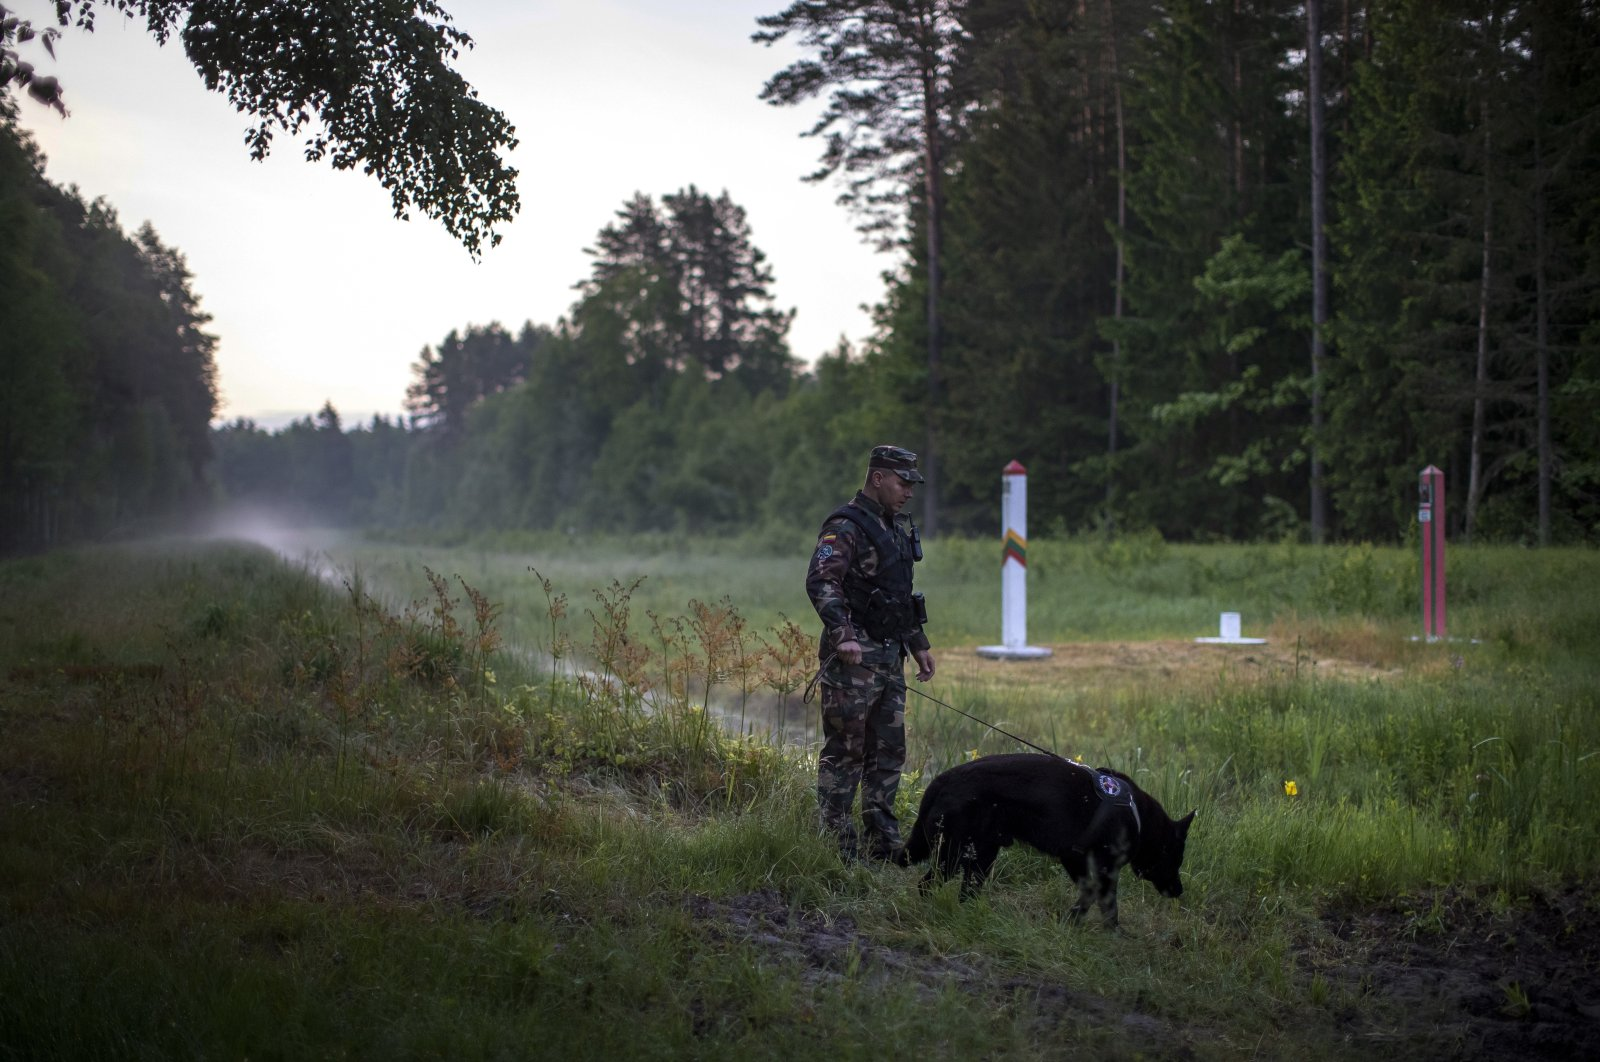 A member of the Lithuania State Border Guard Service patrols on the border with Belarus. Around him are the Belarusian (right) and Lithuanian (second right) border markers, near small town Kapciamiestis, some 160km (100 miles) of the capital Vilnius, Lithuania, June 10, 2021. (AP Photo)